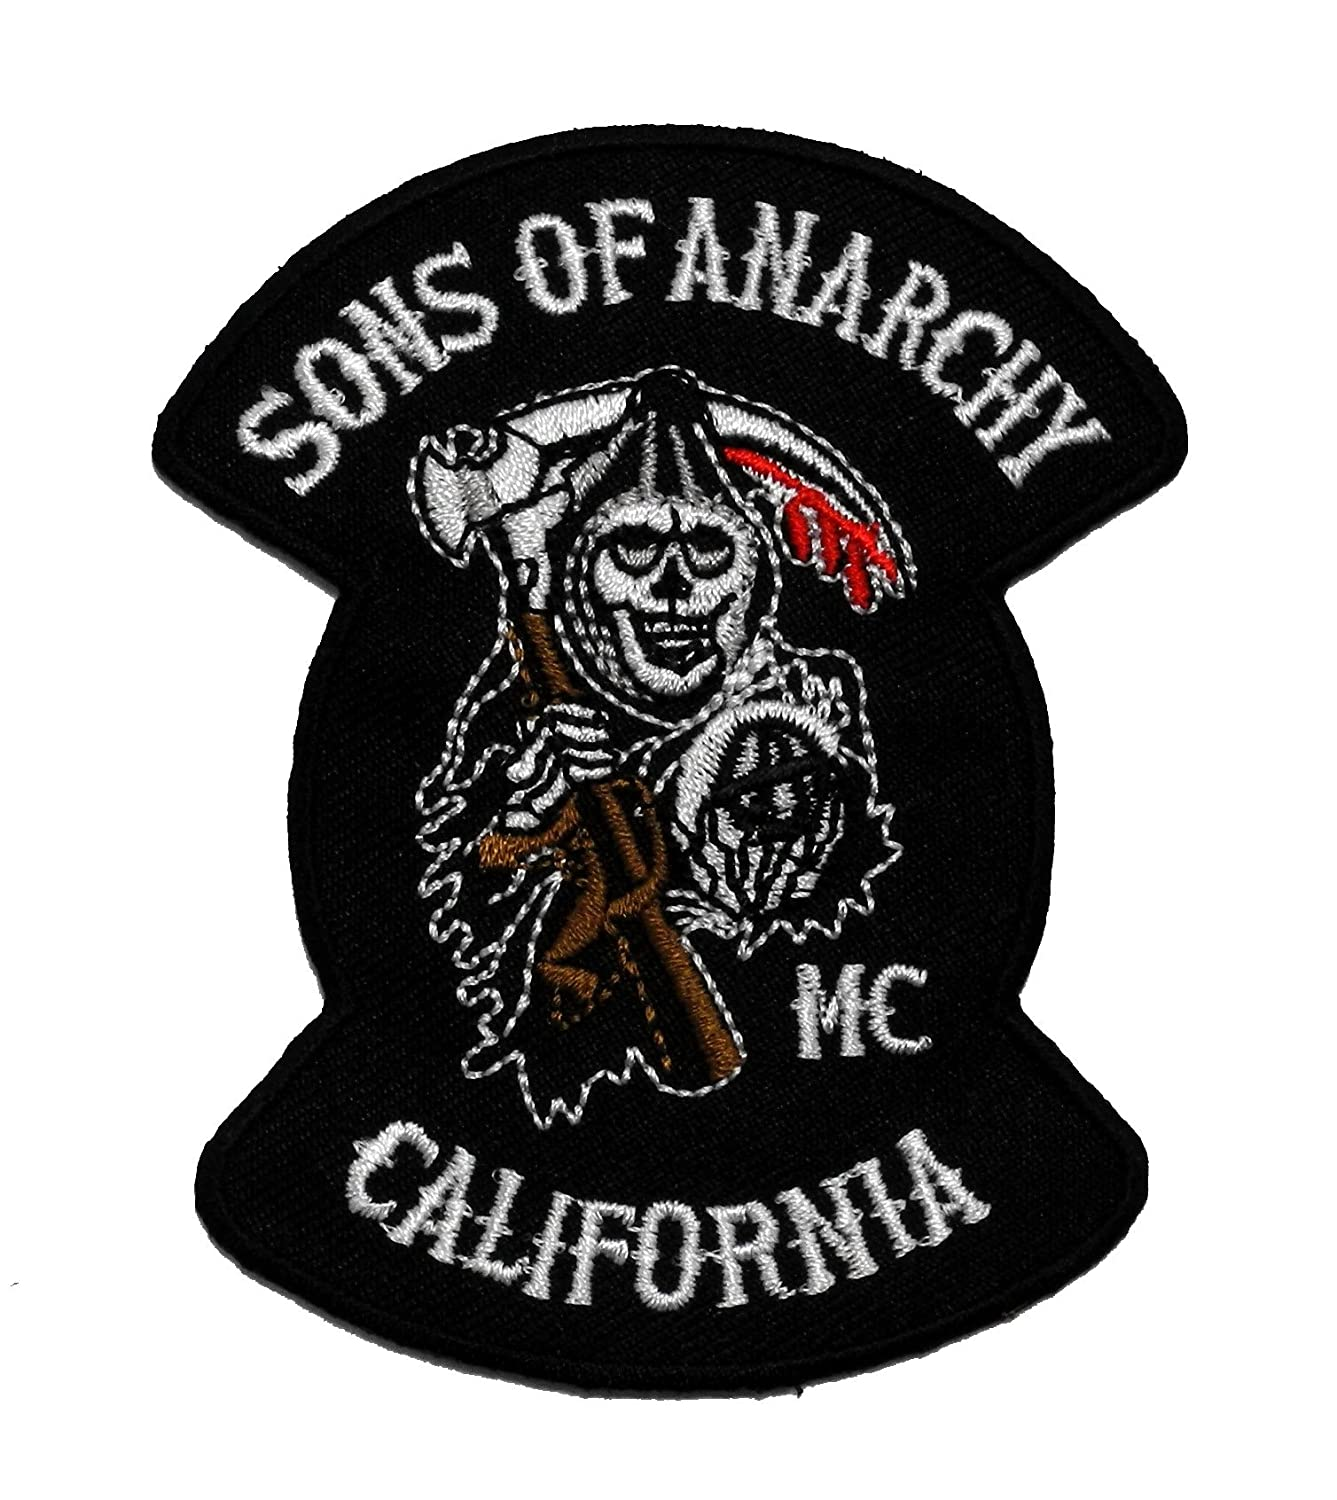 Sons of Anarchy SoA California mc Outlaw Gangster motorista ...